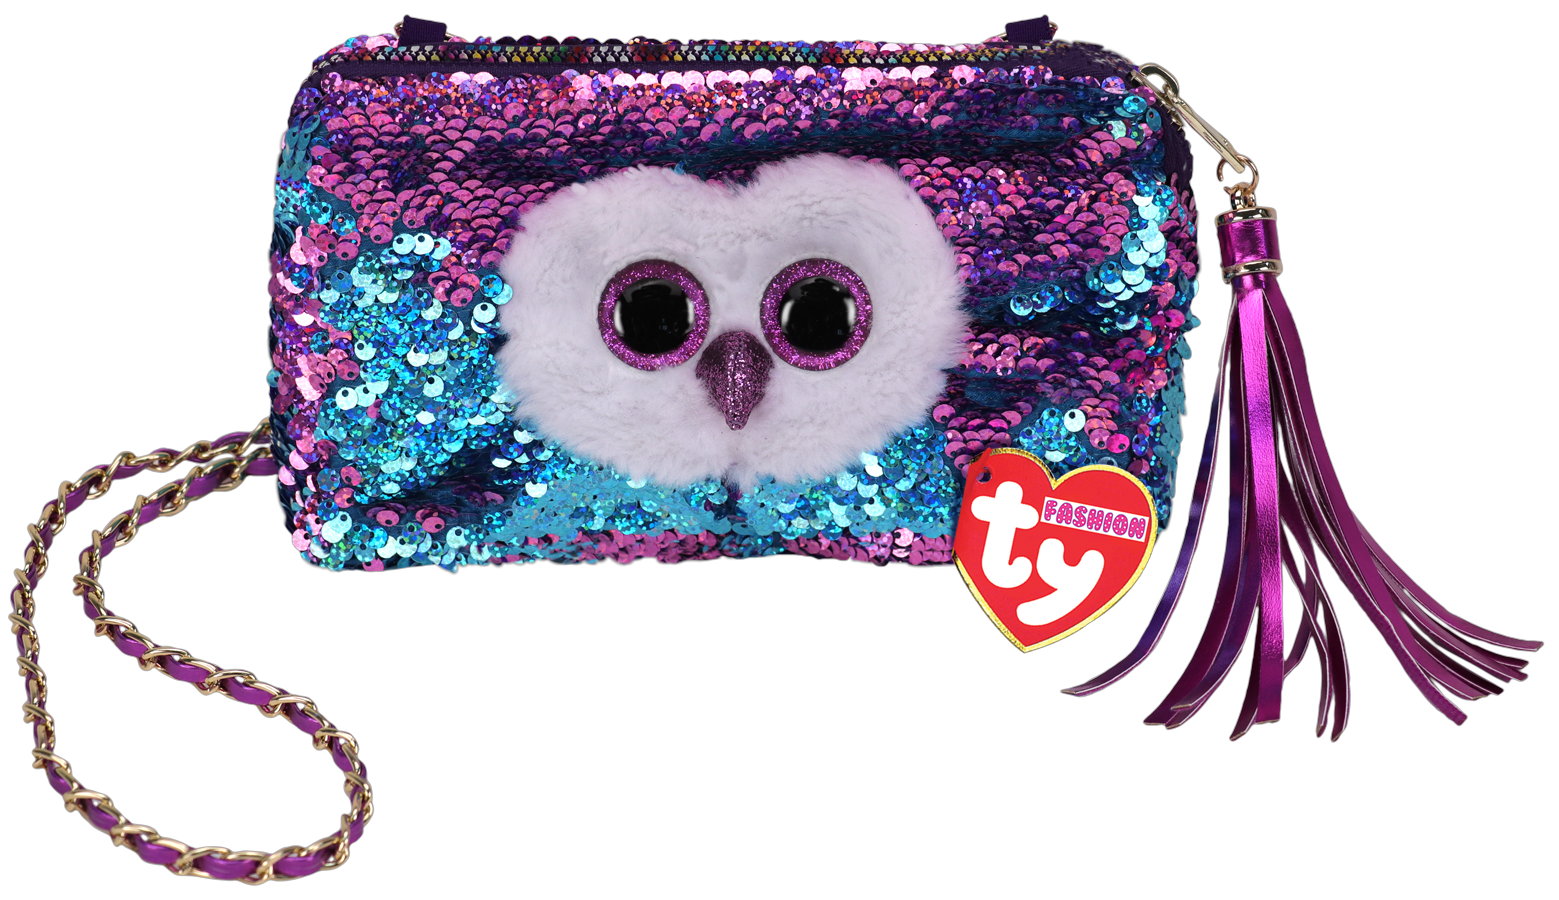 Ty Plush - Sequin Square Purse - Moonlight the Purple Owl (TY95148)